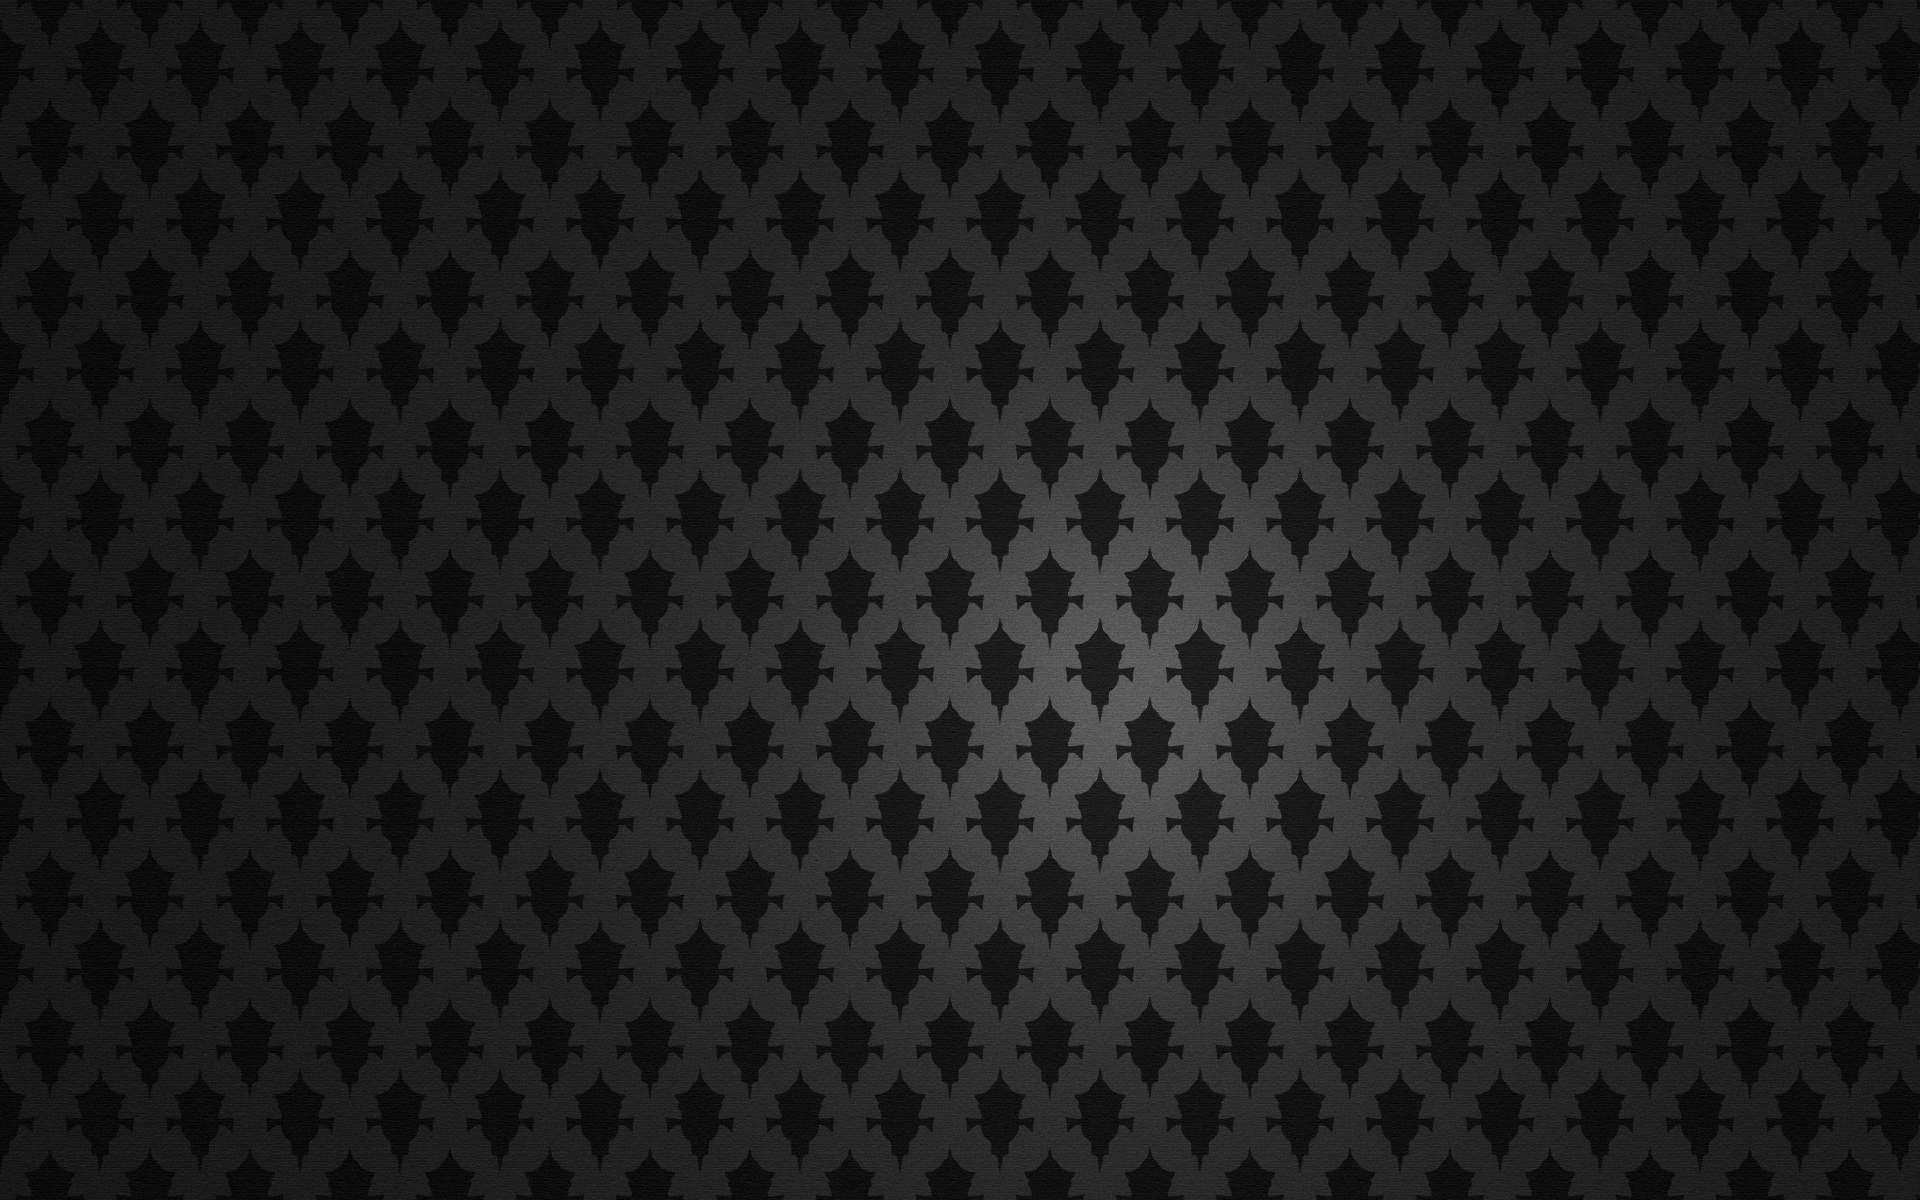 Black Wallpaper Background : Black Wall - Wallpaper, High Definition, High Quality ...